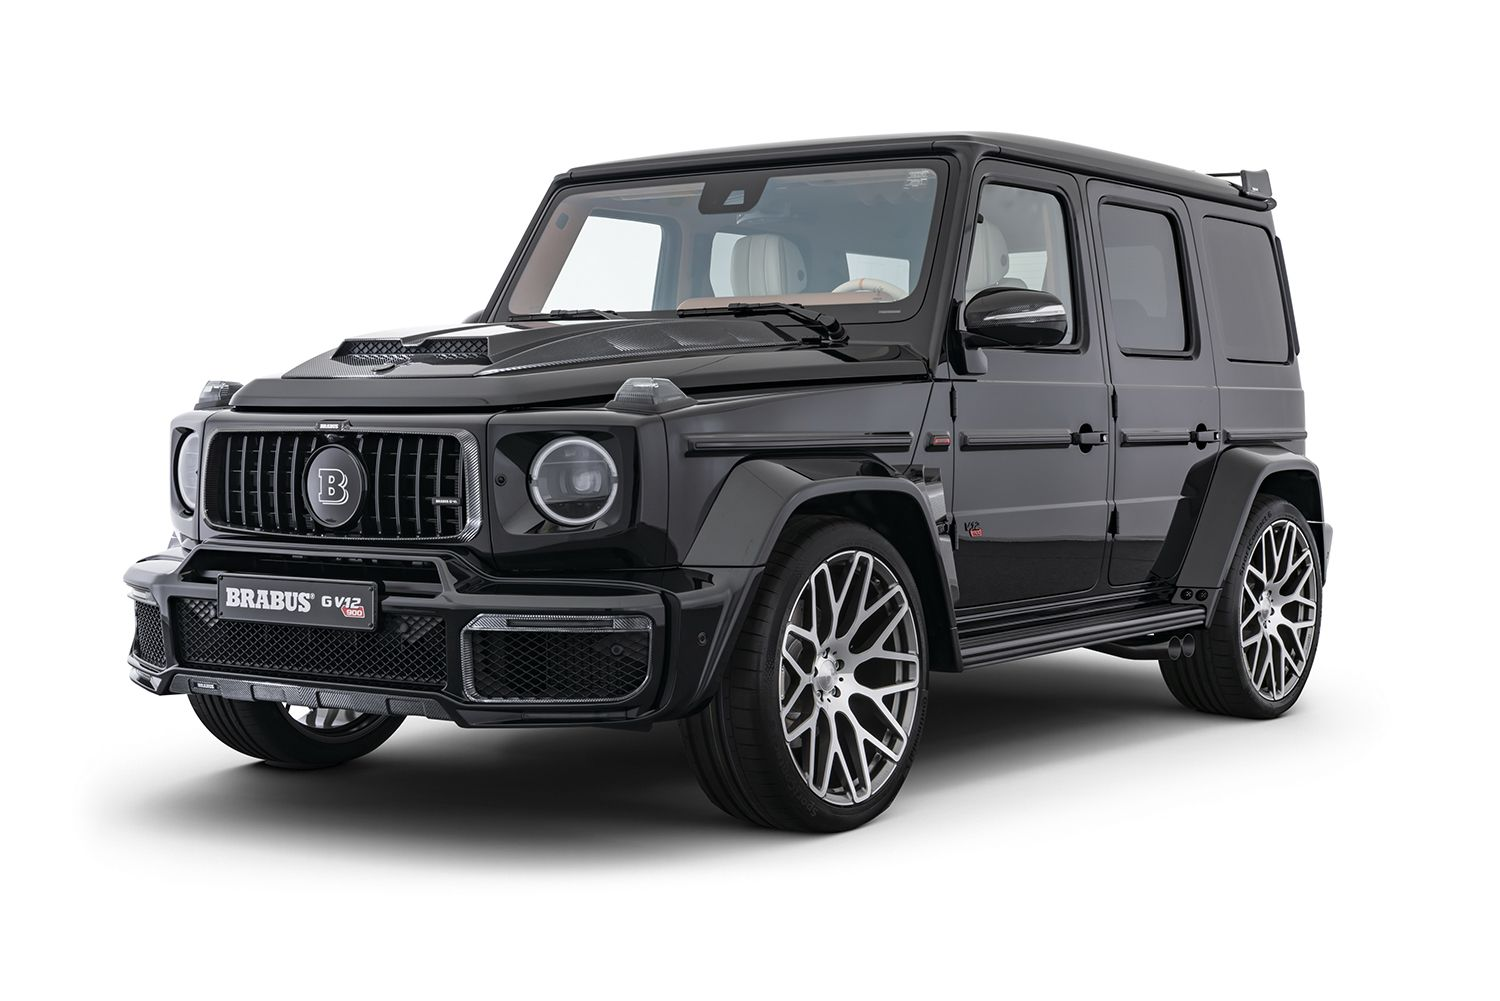 2020 Brabus G V12 900 Revealed New V 12 G Class Specs And Info